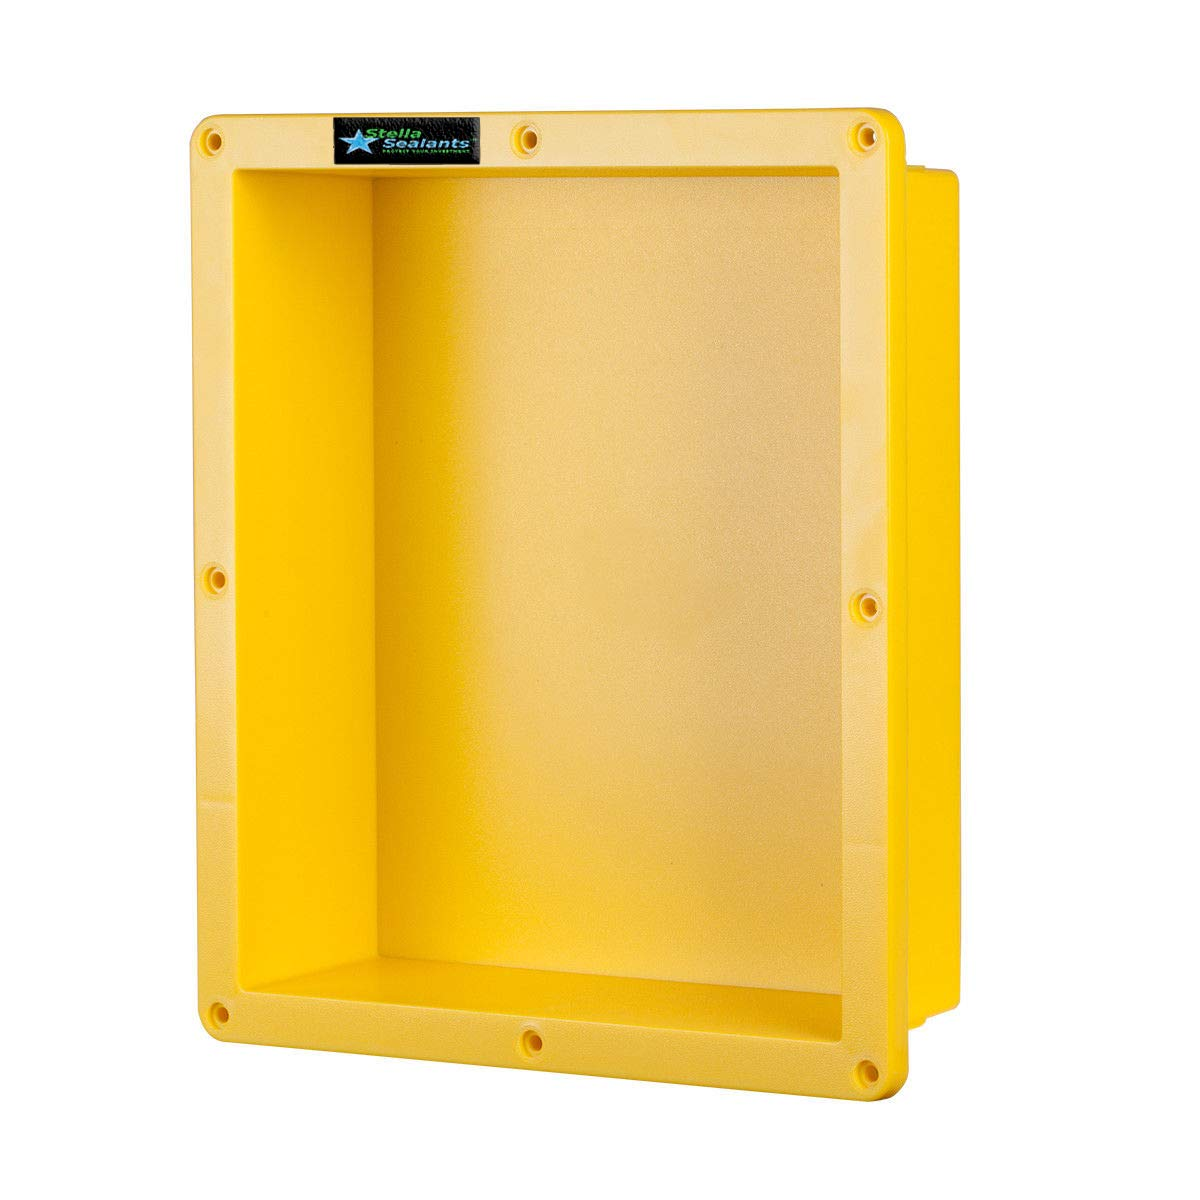 Stella Sealants Ready for Tile Shower Niche 16'' x 14'' - Waterproof Leak-Proof Bathroom Recessed Shelf Organiser Storage for Shampoo and Toiletry Storage from